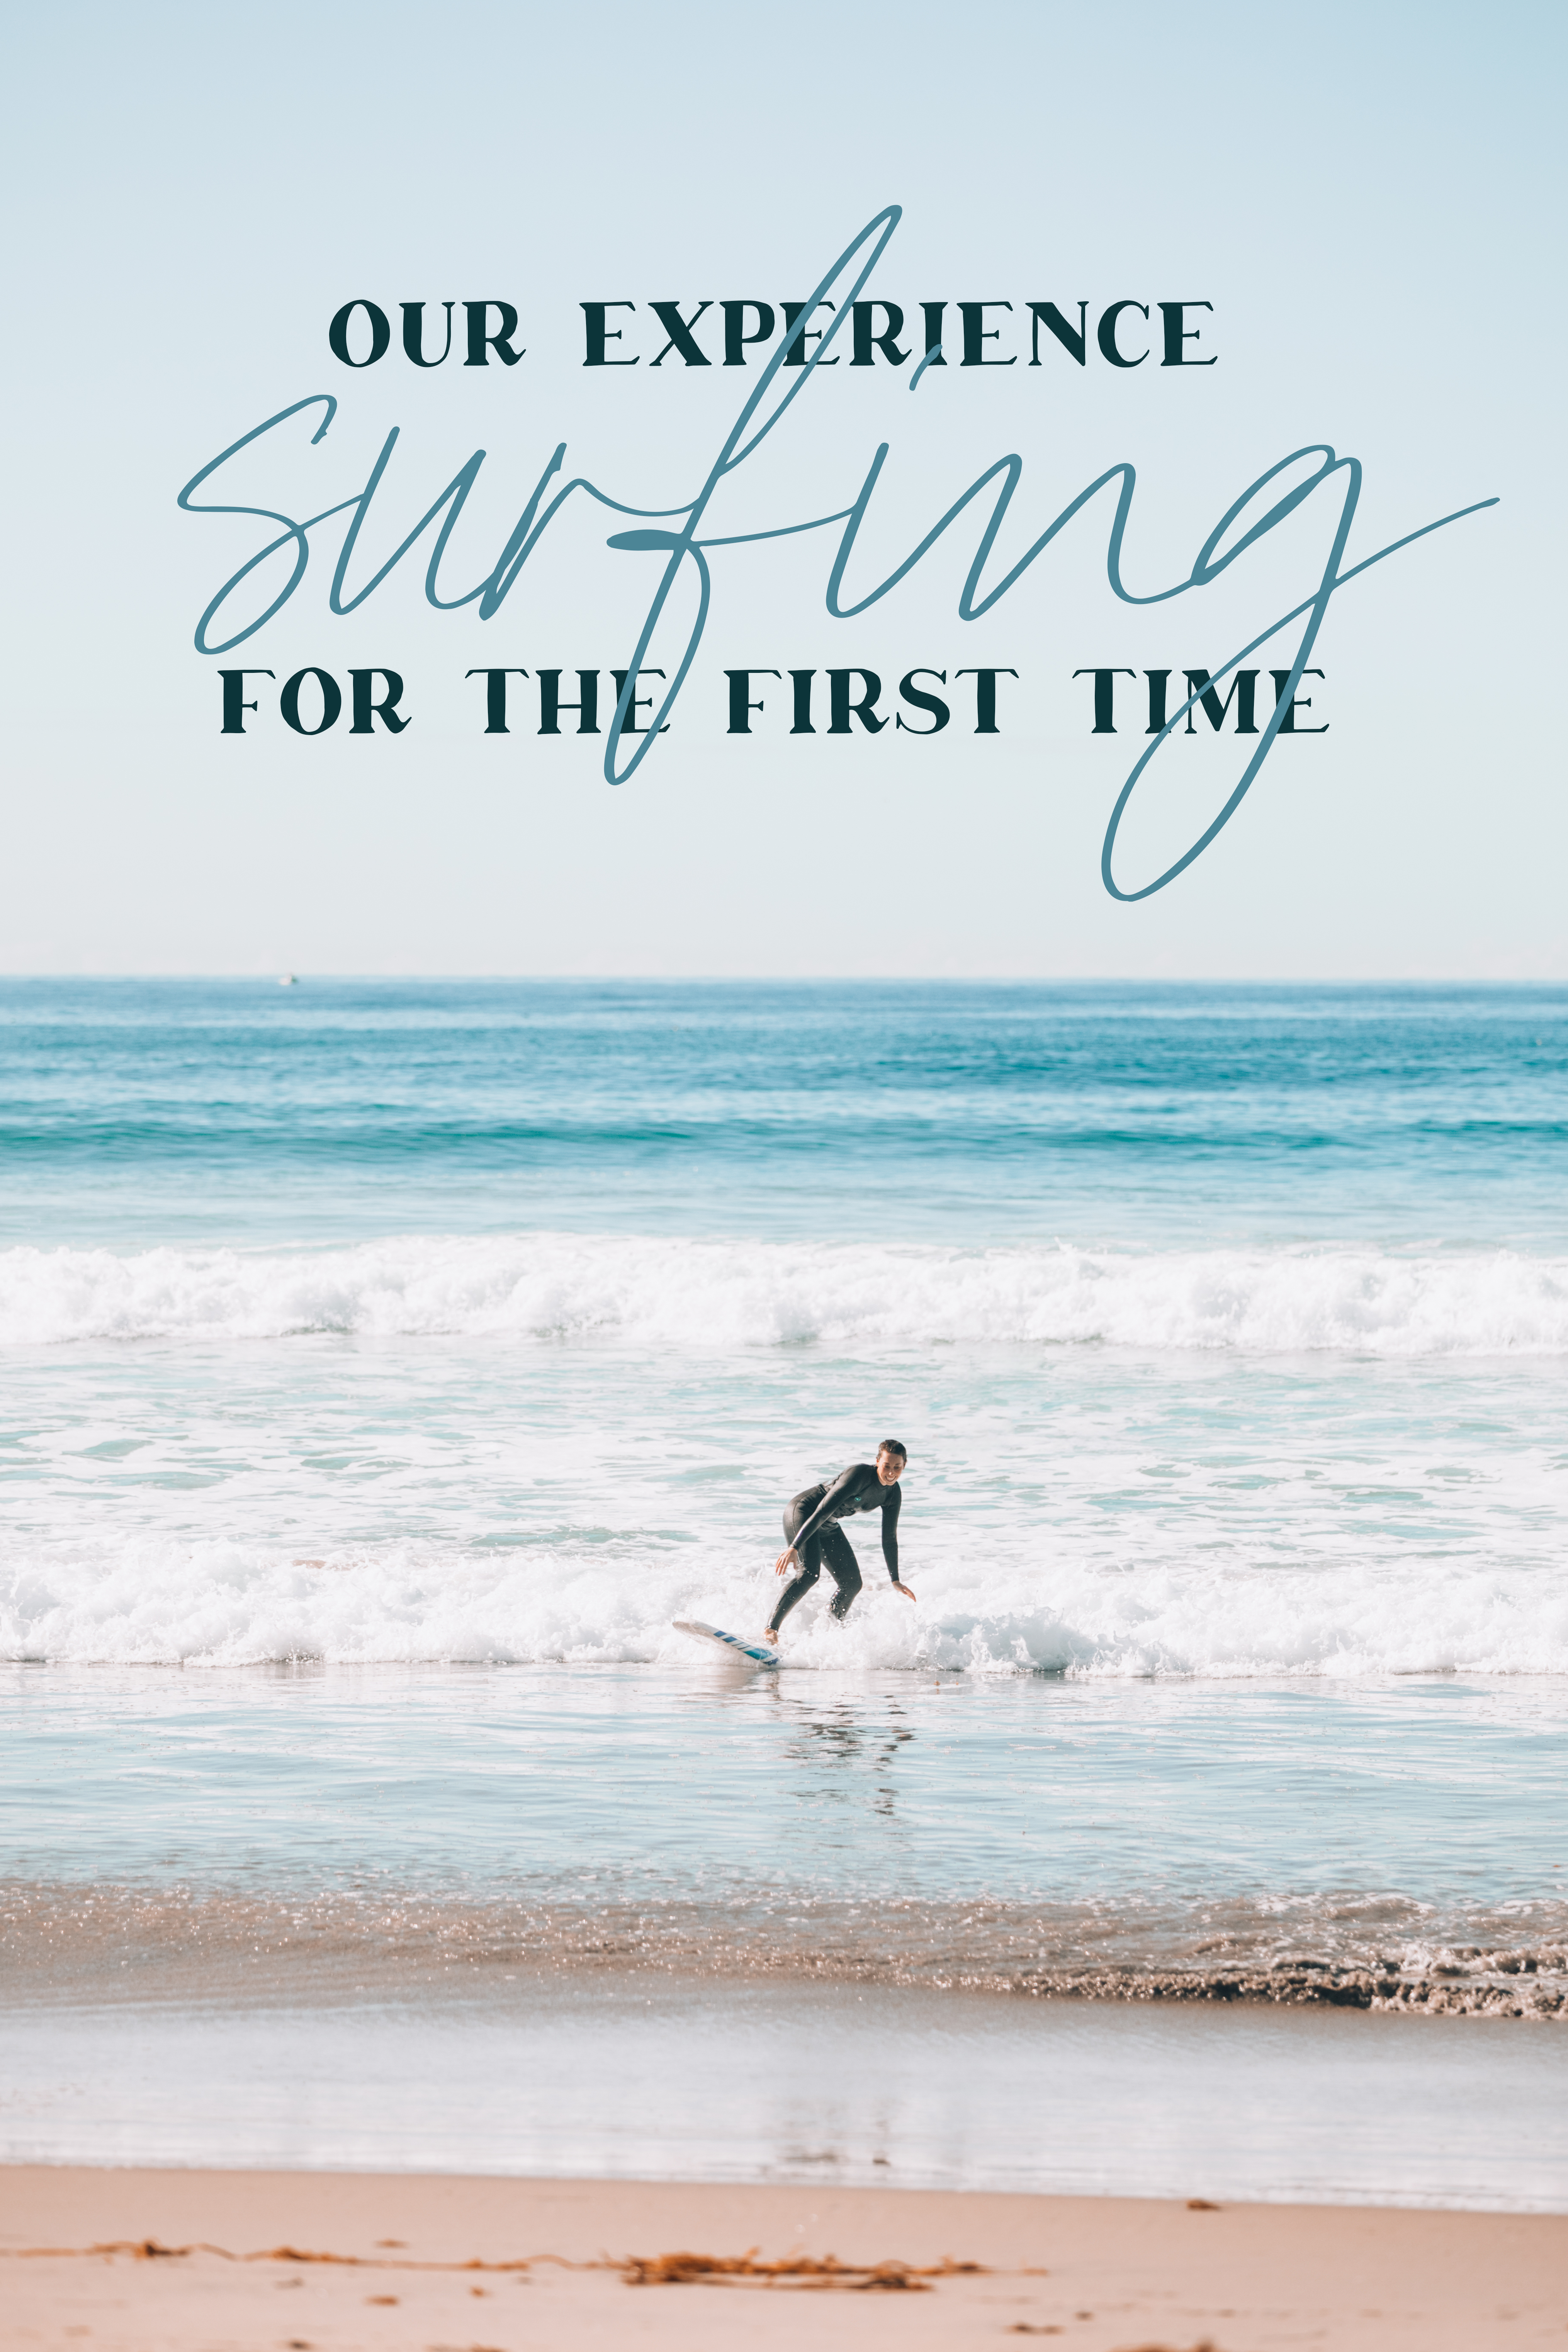 our experience surfing for the first time